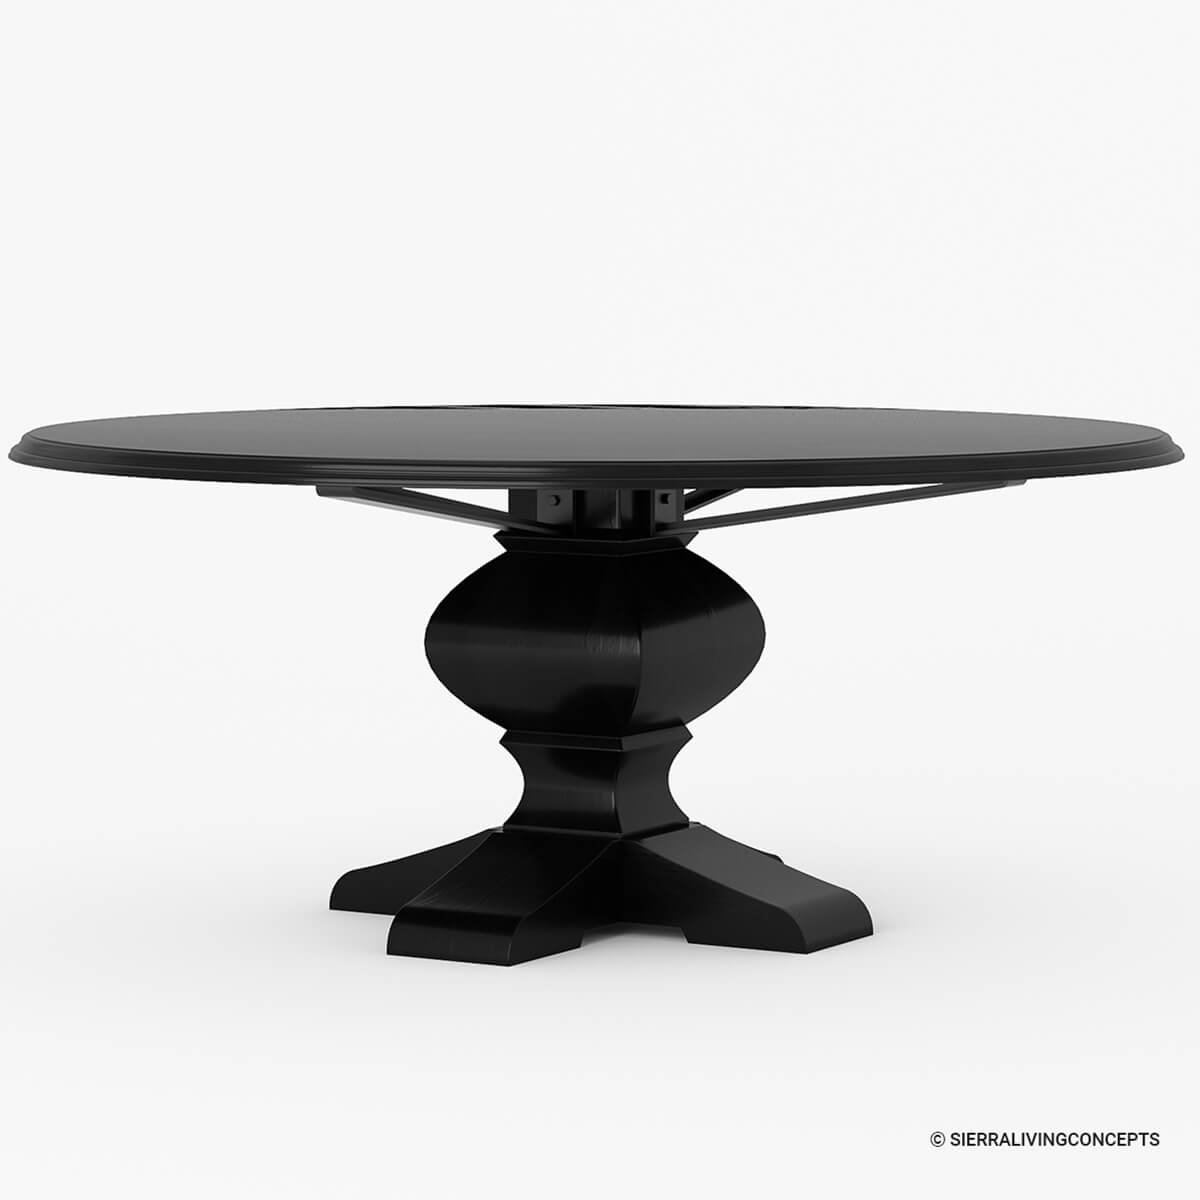 sierra nevada rustic solid wood large round dining table for 10 people. Black Bedroom Furniture Sets. Home Design Ideas